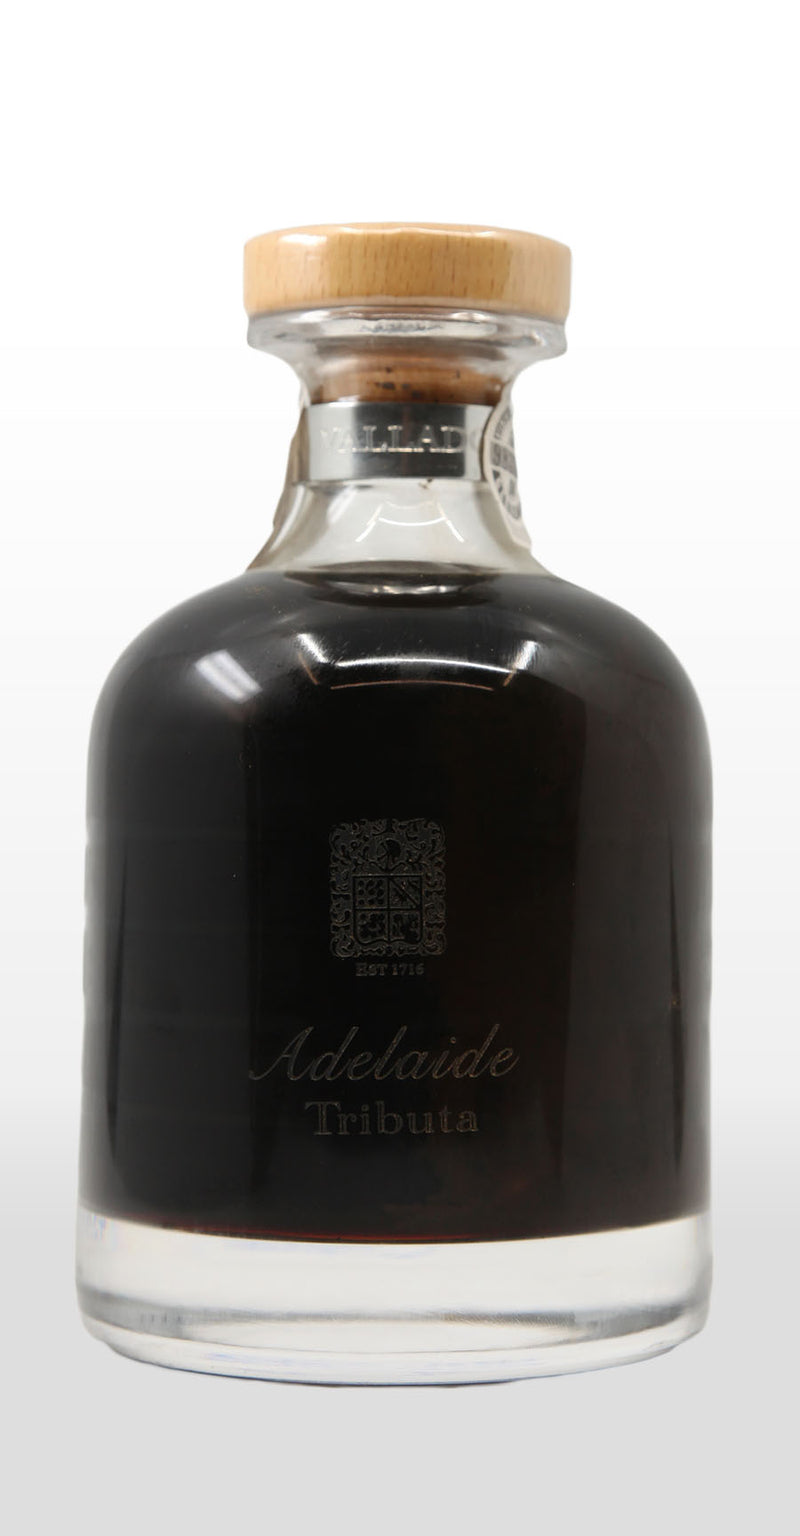 QUINTA DO VALLADO ADELAIDE TRIBUTA 750ML